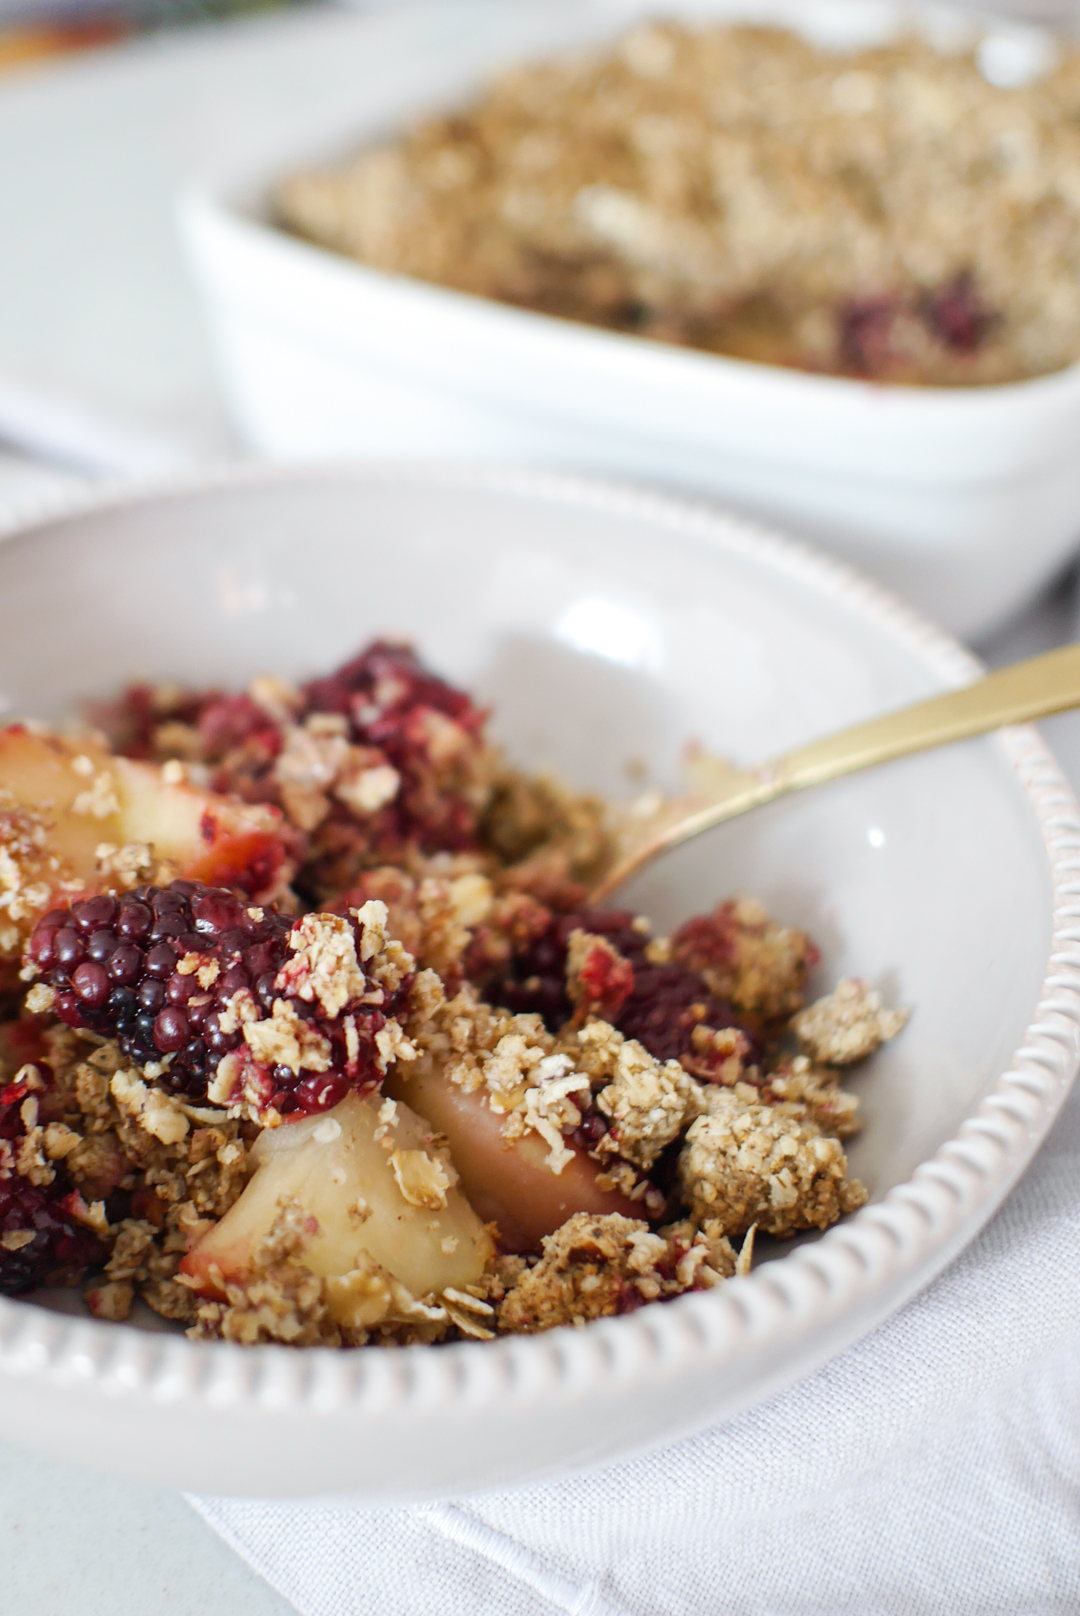 Healthy crumble recipe (that's perfect for breakfast)